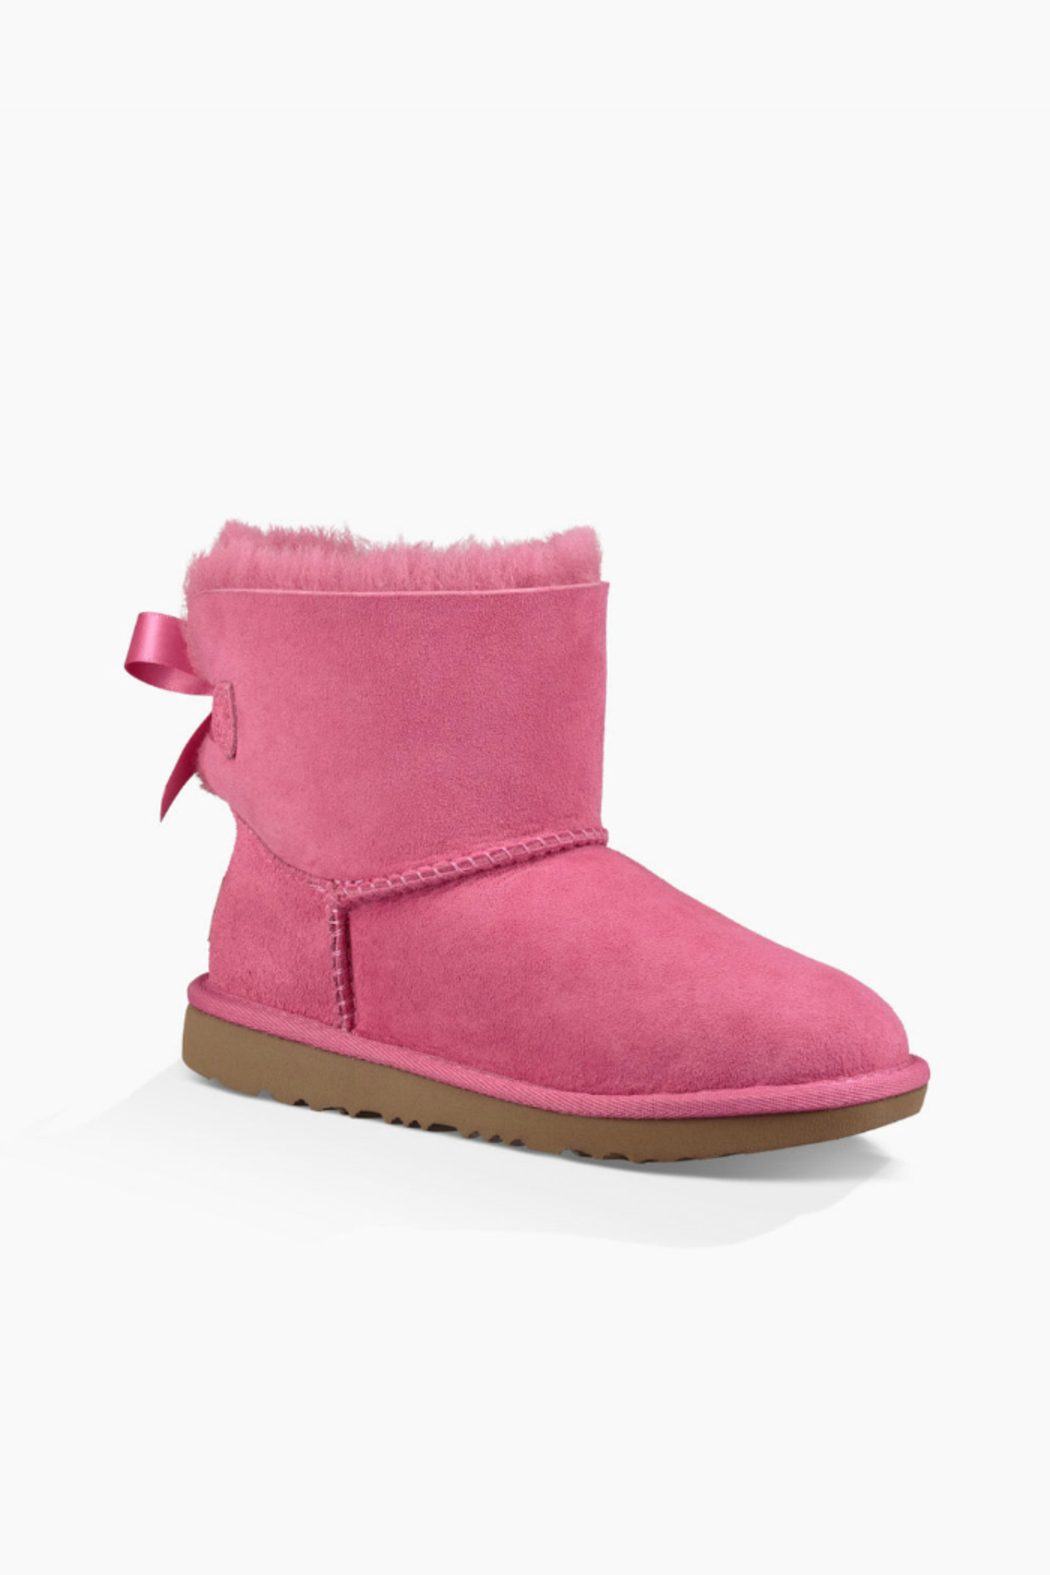 Ugg UGG KIDS MINI BAILEY BOW II - Front Cropped Image